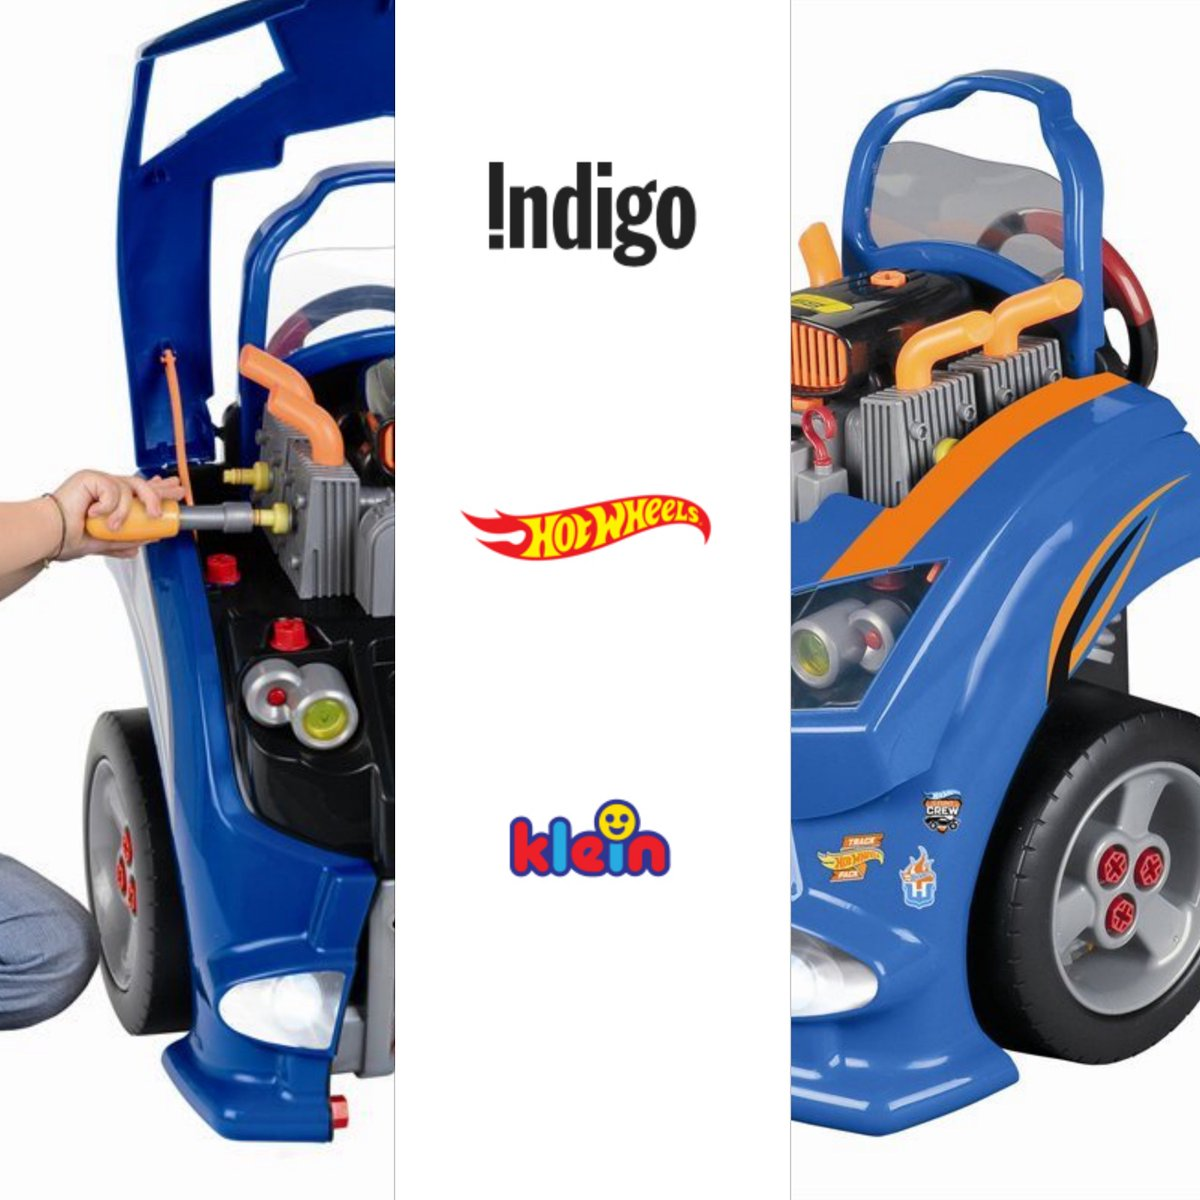 Hypoint3 On Twitter The Hot Wheels Car Engine Offers Many Sound And Light Functions And Numerous Play Options Available Now Https T Co Afsplhribq Hotwheels Klein Toys Toycars Engine Chapters Indigobestof2017 Https T Co Oljojsrluf